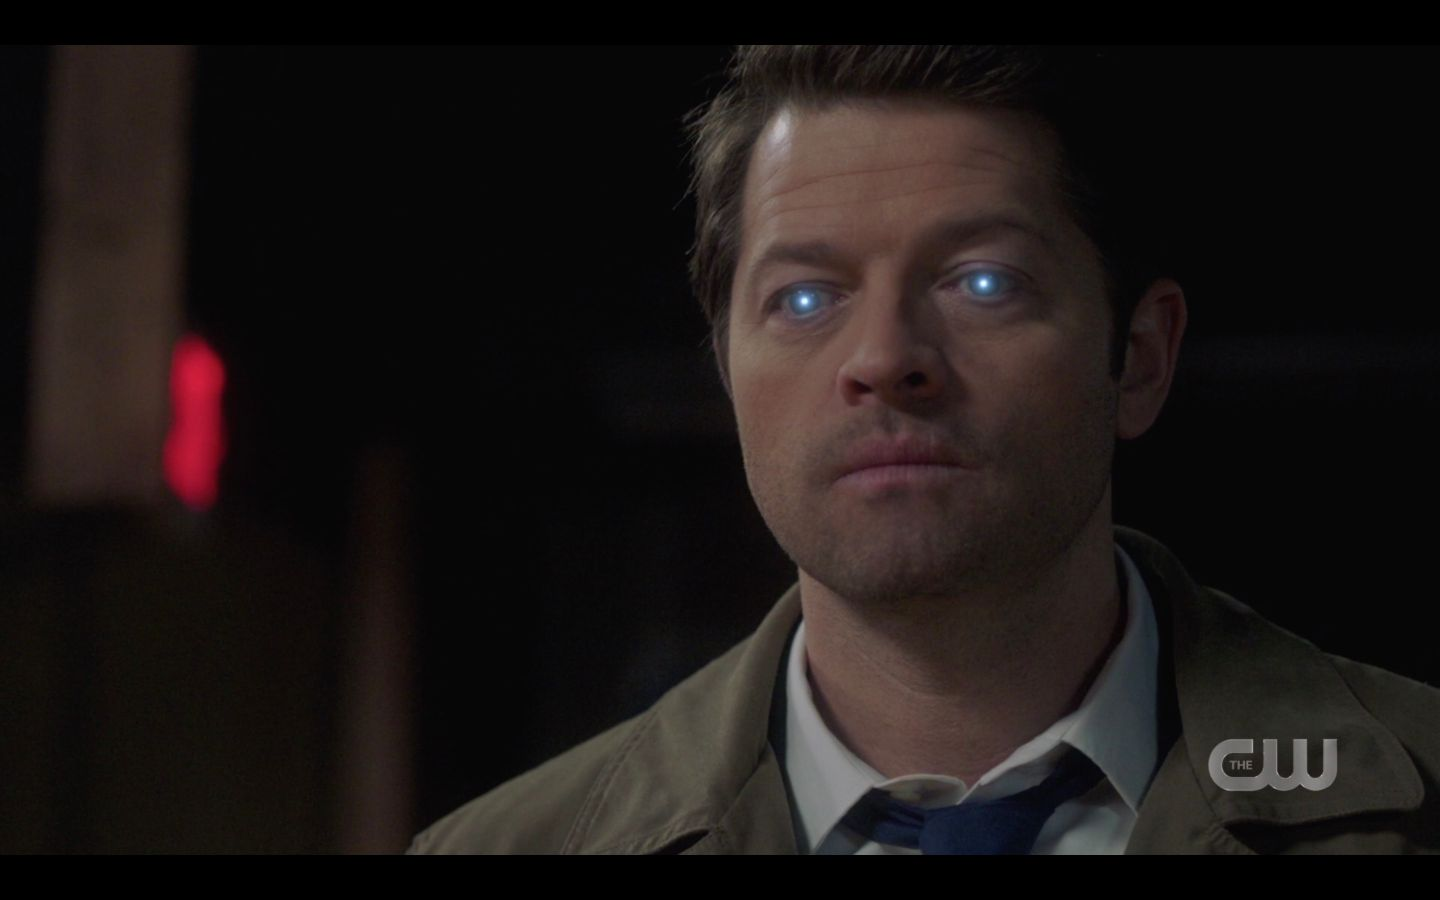 SPN Castiel blue eyes light up for Anael game night